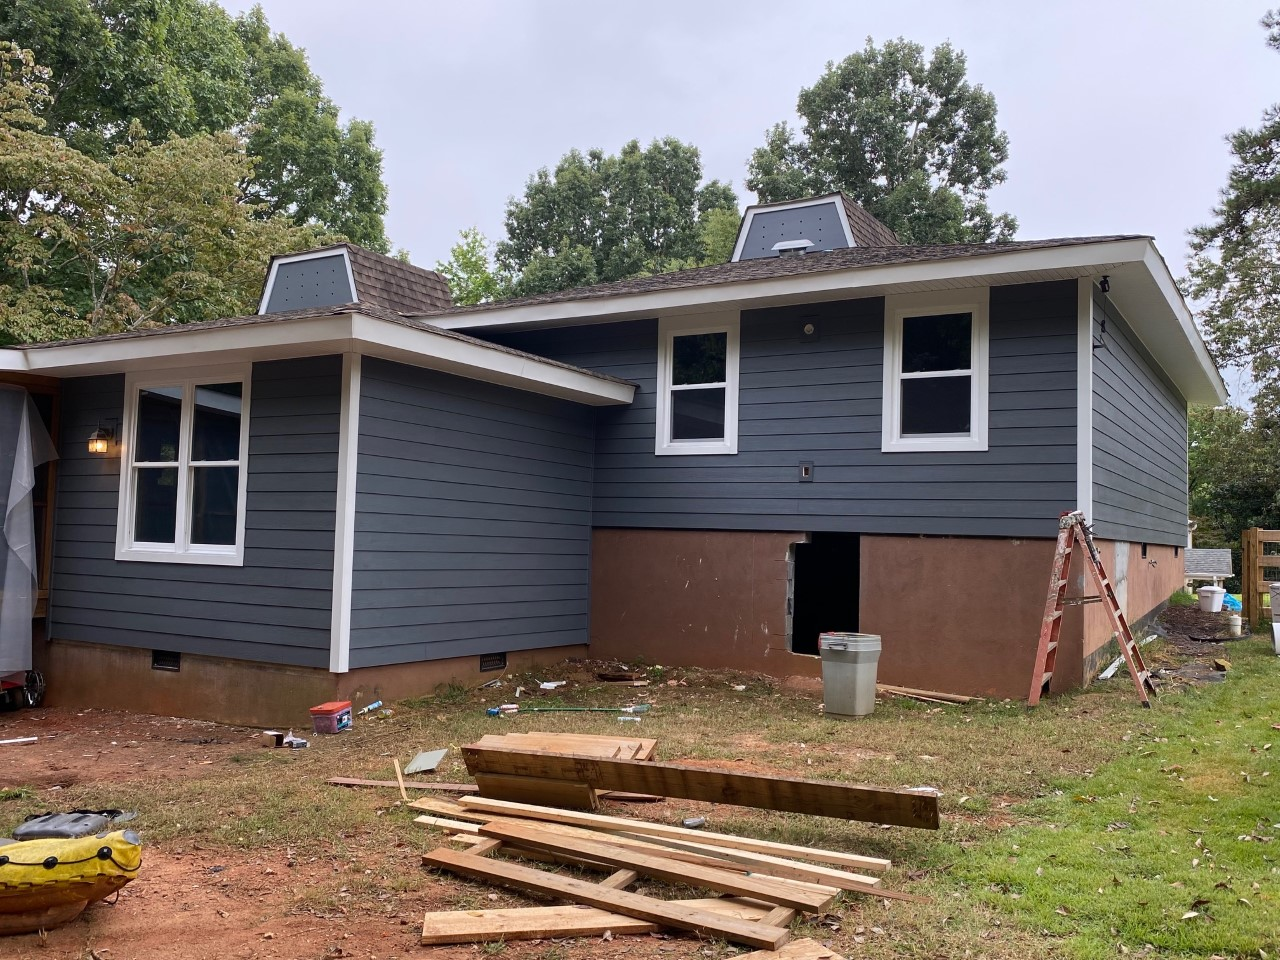 tega cay during project hardie plank